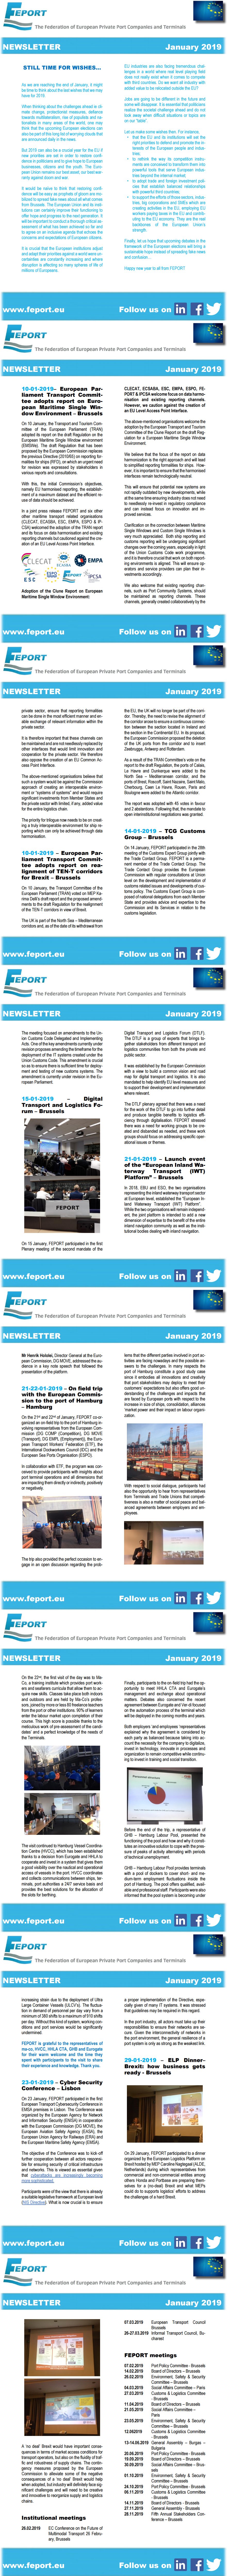 FEPORT newsletter January 2019 final 2